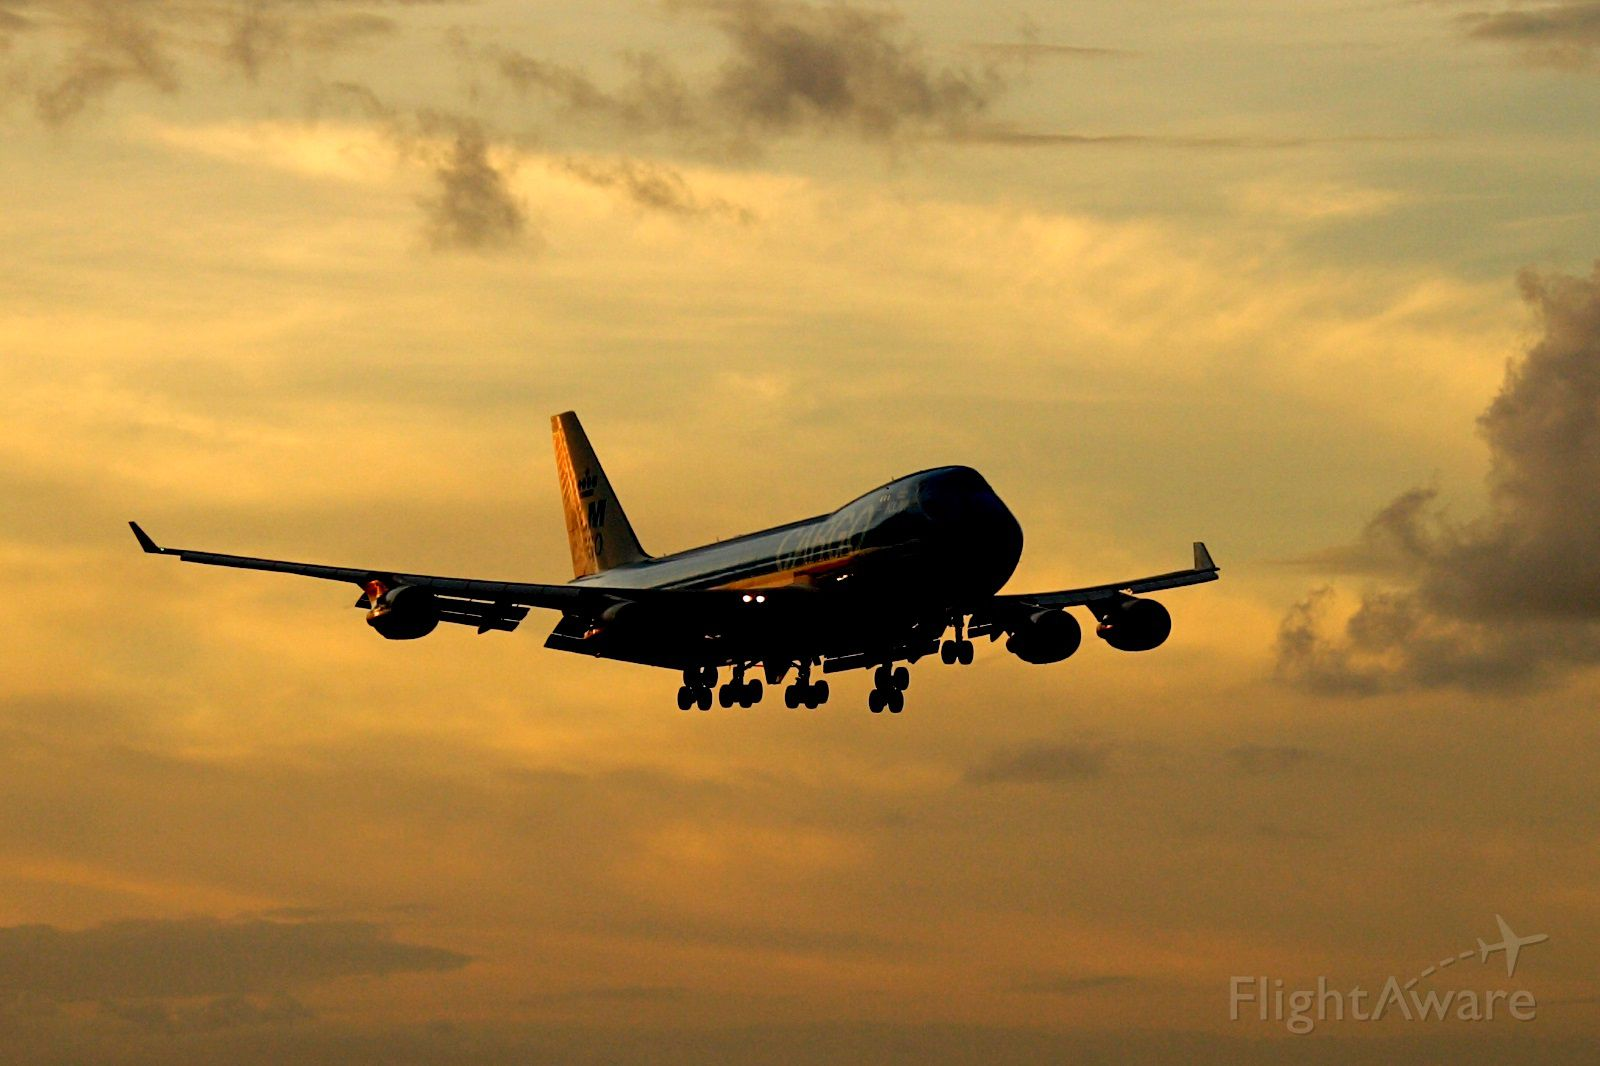 """Boeing 747-400 (PH-CKC) - Check out our aviation videos with 100% authentic and non-leveled sound! <a rel=""""nofollow"""" href=""""http://youtube.com/ilikerio"""">https://youtube.com/ilikerio</a><br /><br />""""Oranje / Orange"""" on short final to 9 at sunset, operated by Martinair Cargo."""